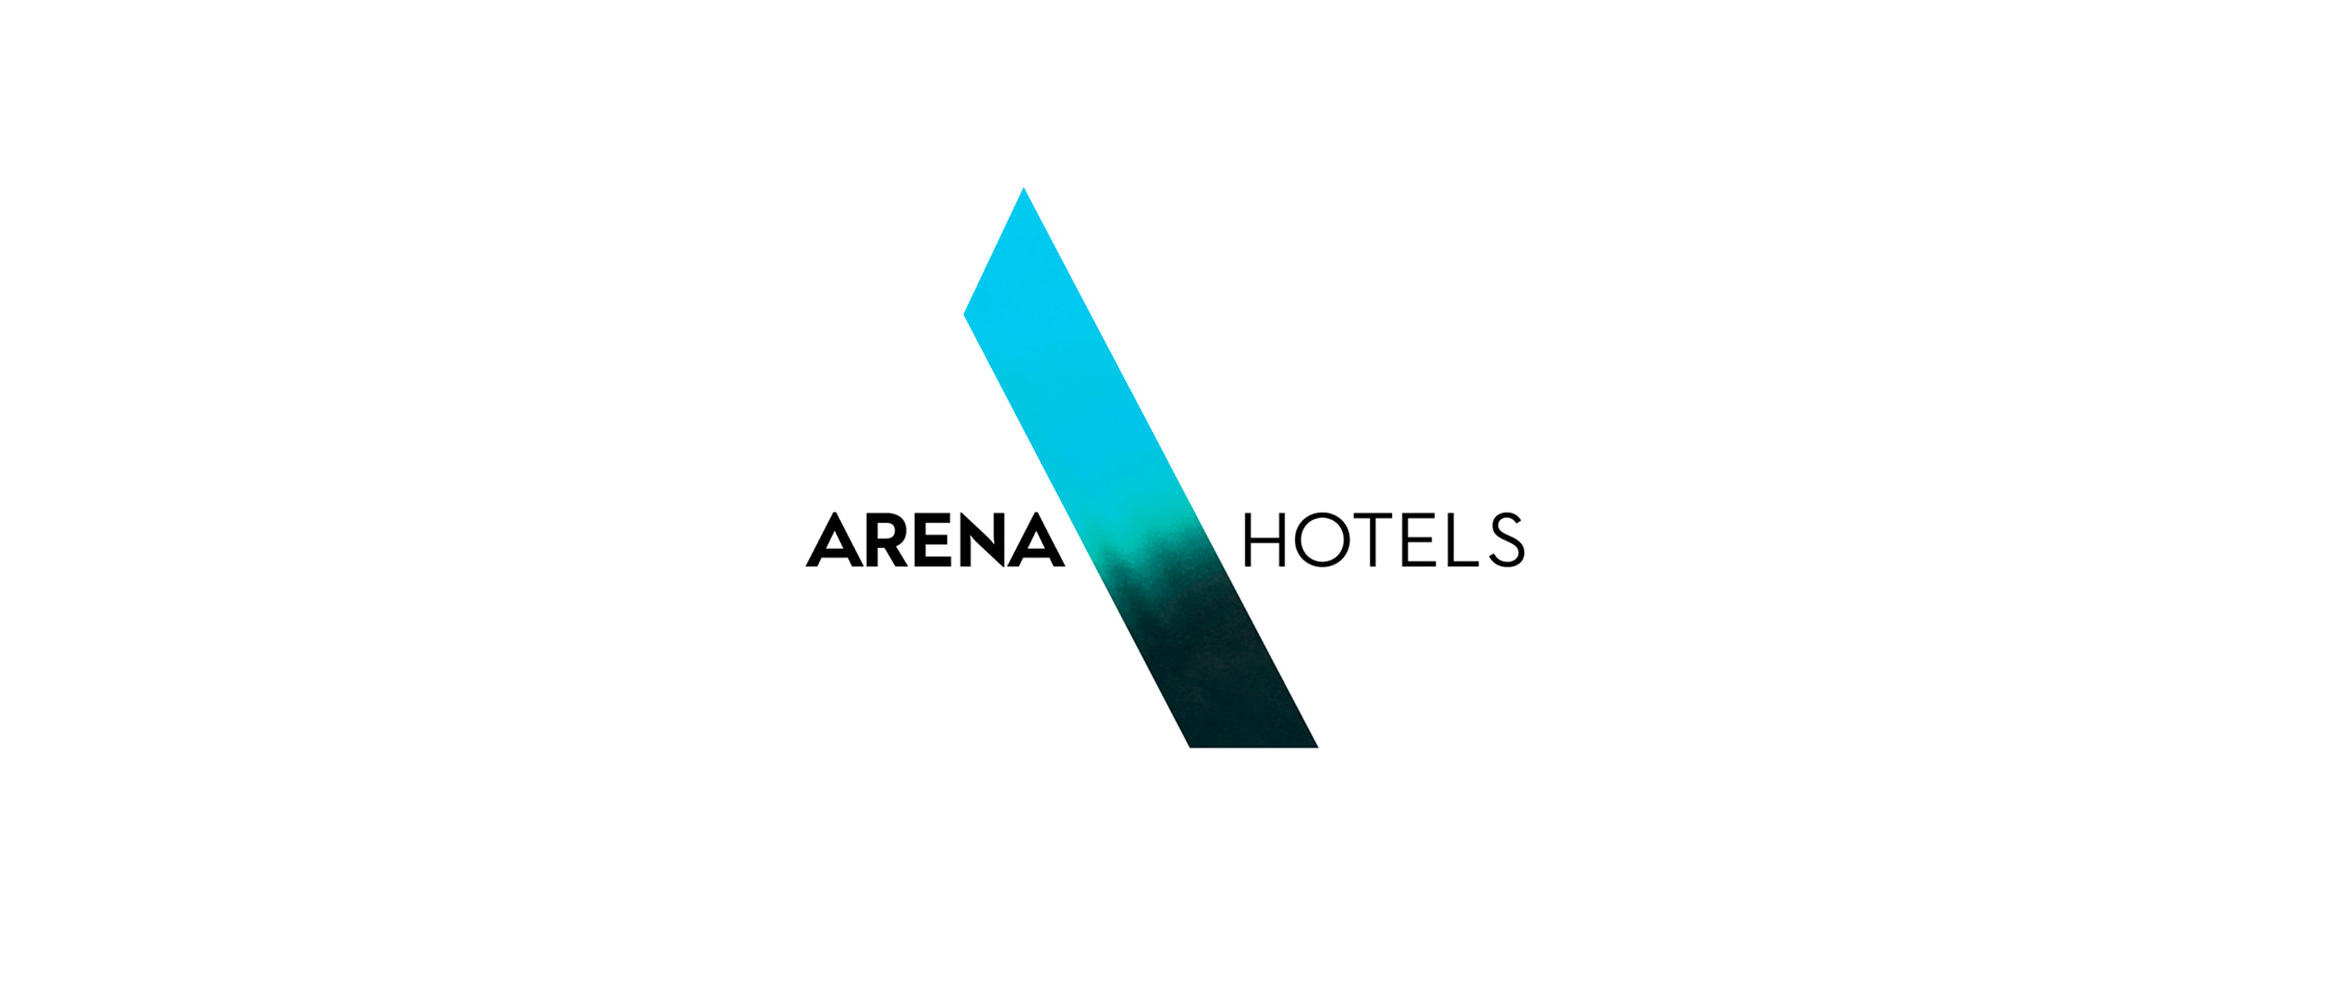 ArenaHotels.com